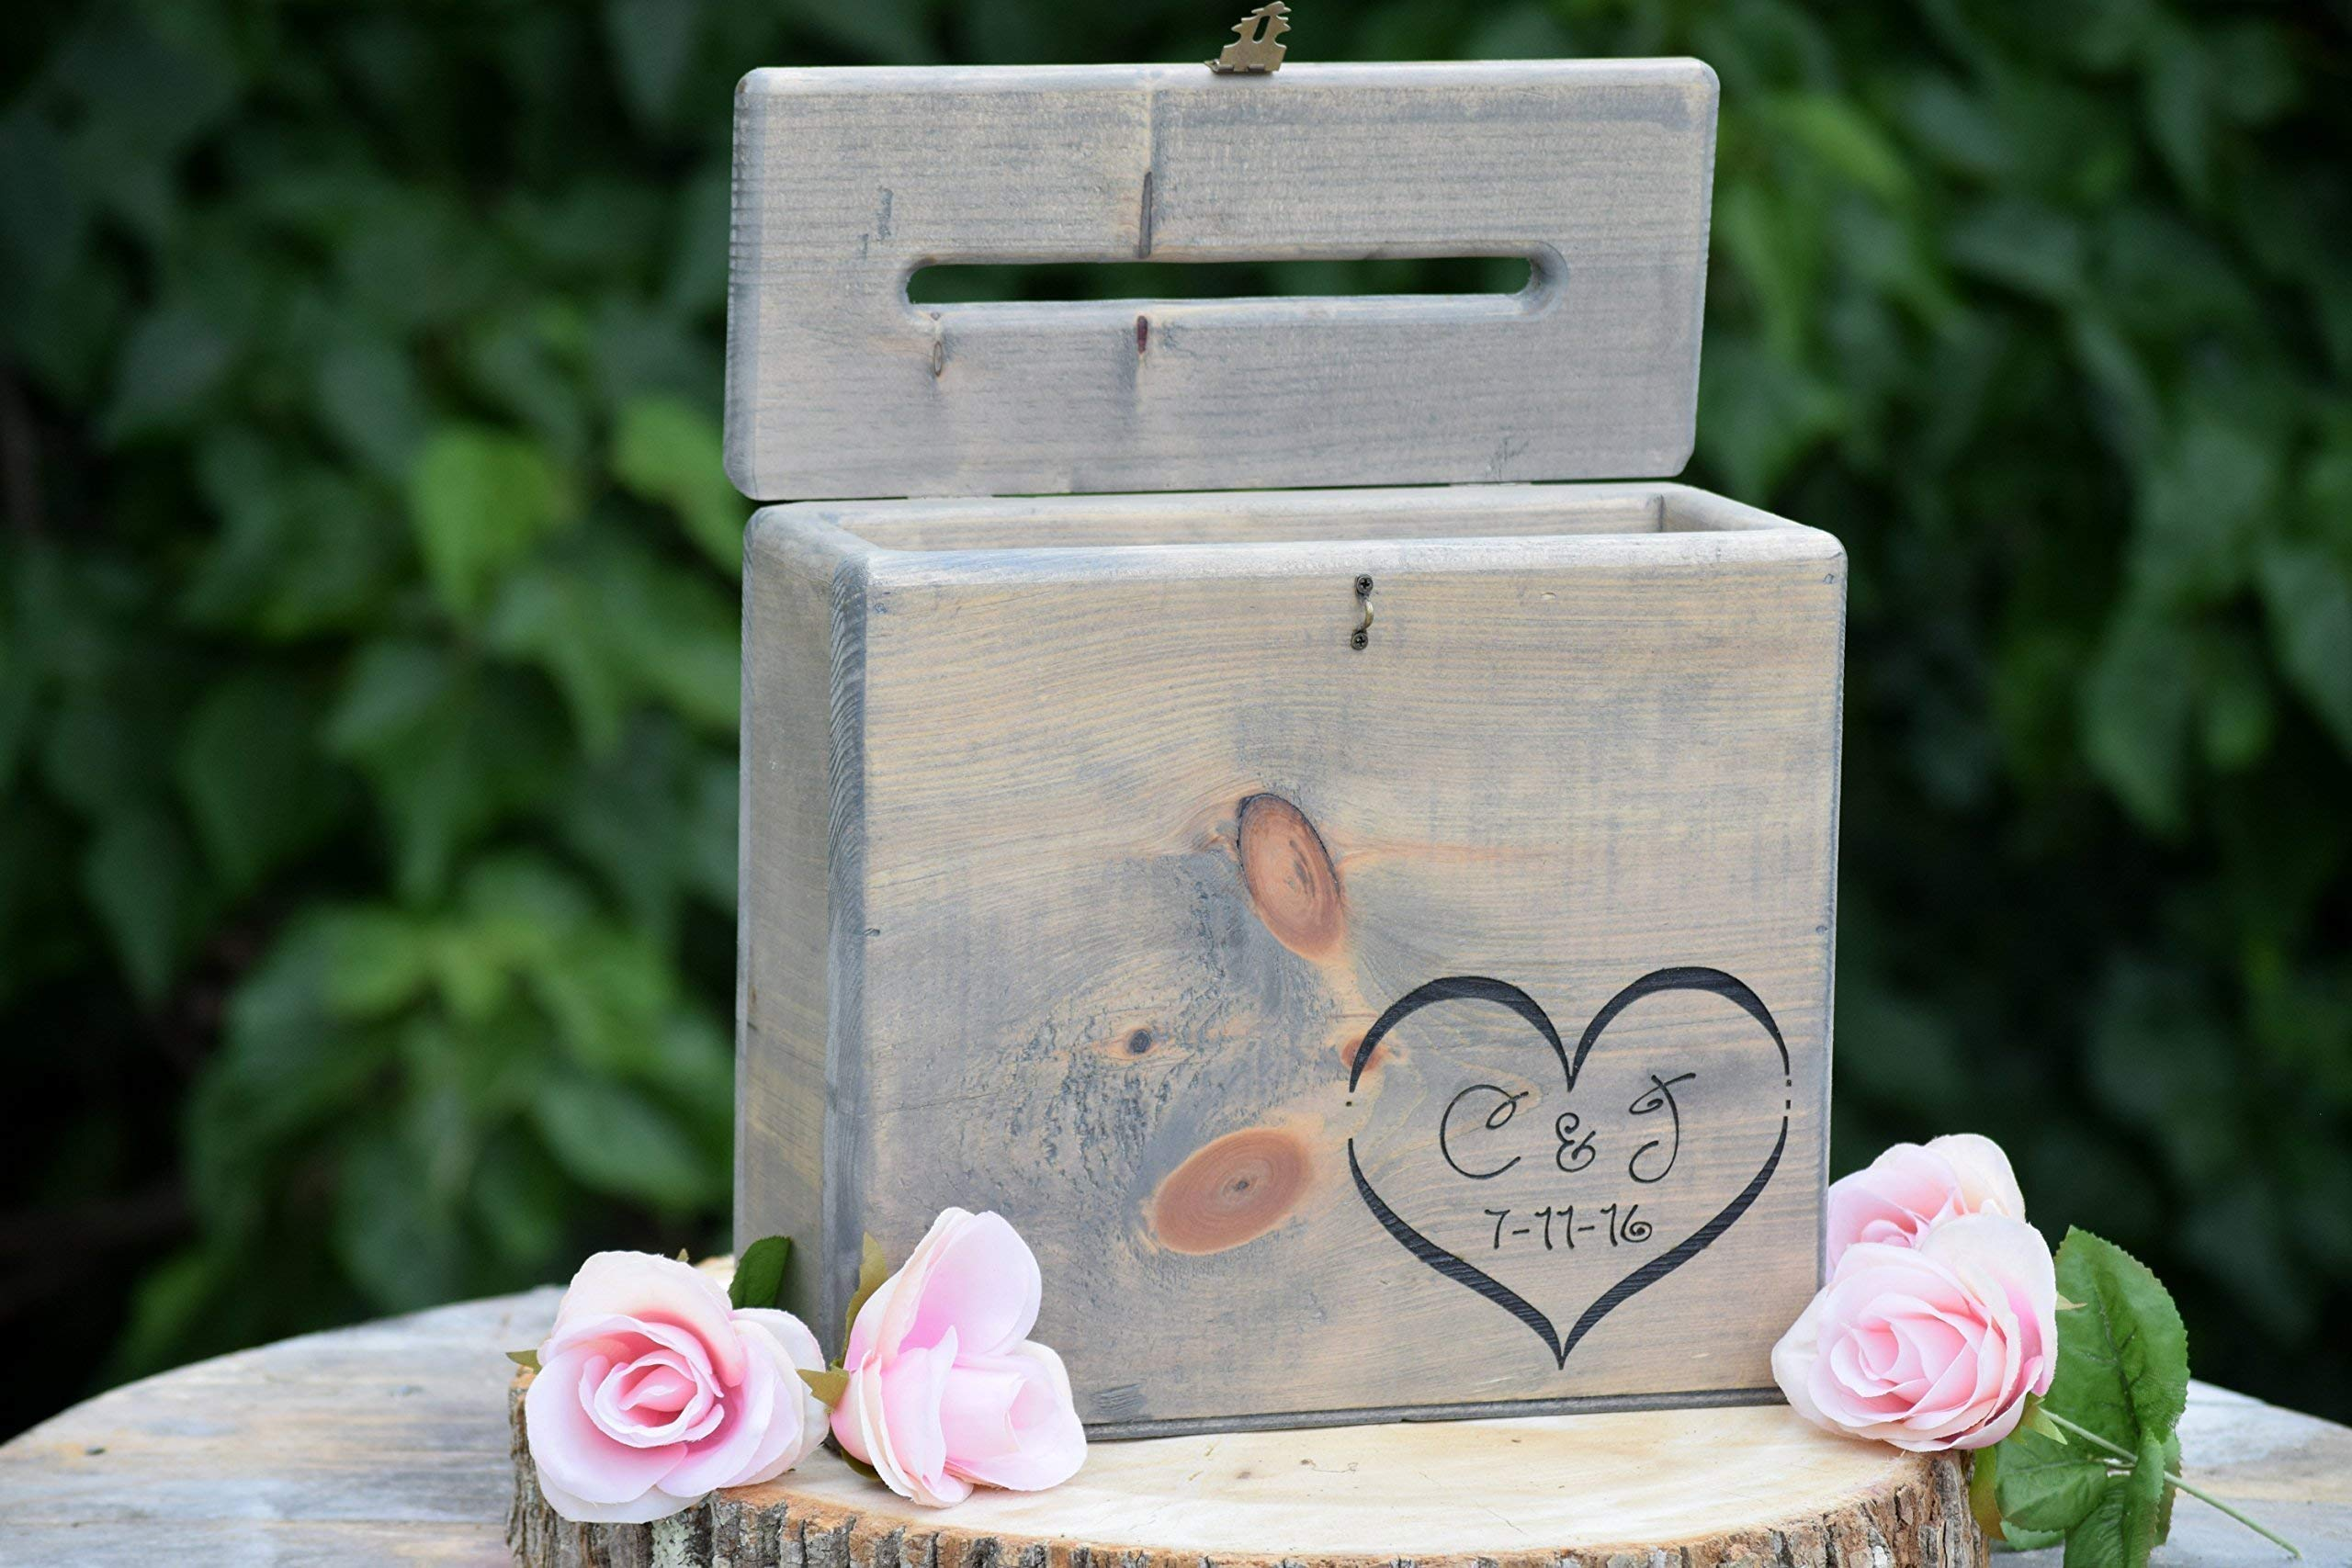 Secured Lockable Card Box with Card Slit - Rustic Wedding Card Box - Wedding Card Holder - Personalized Wedding Keepsake Box - Love Letter Box by Country Barn Babe